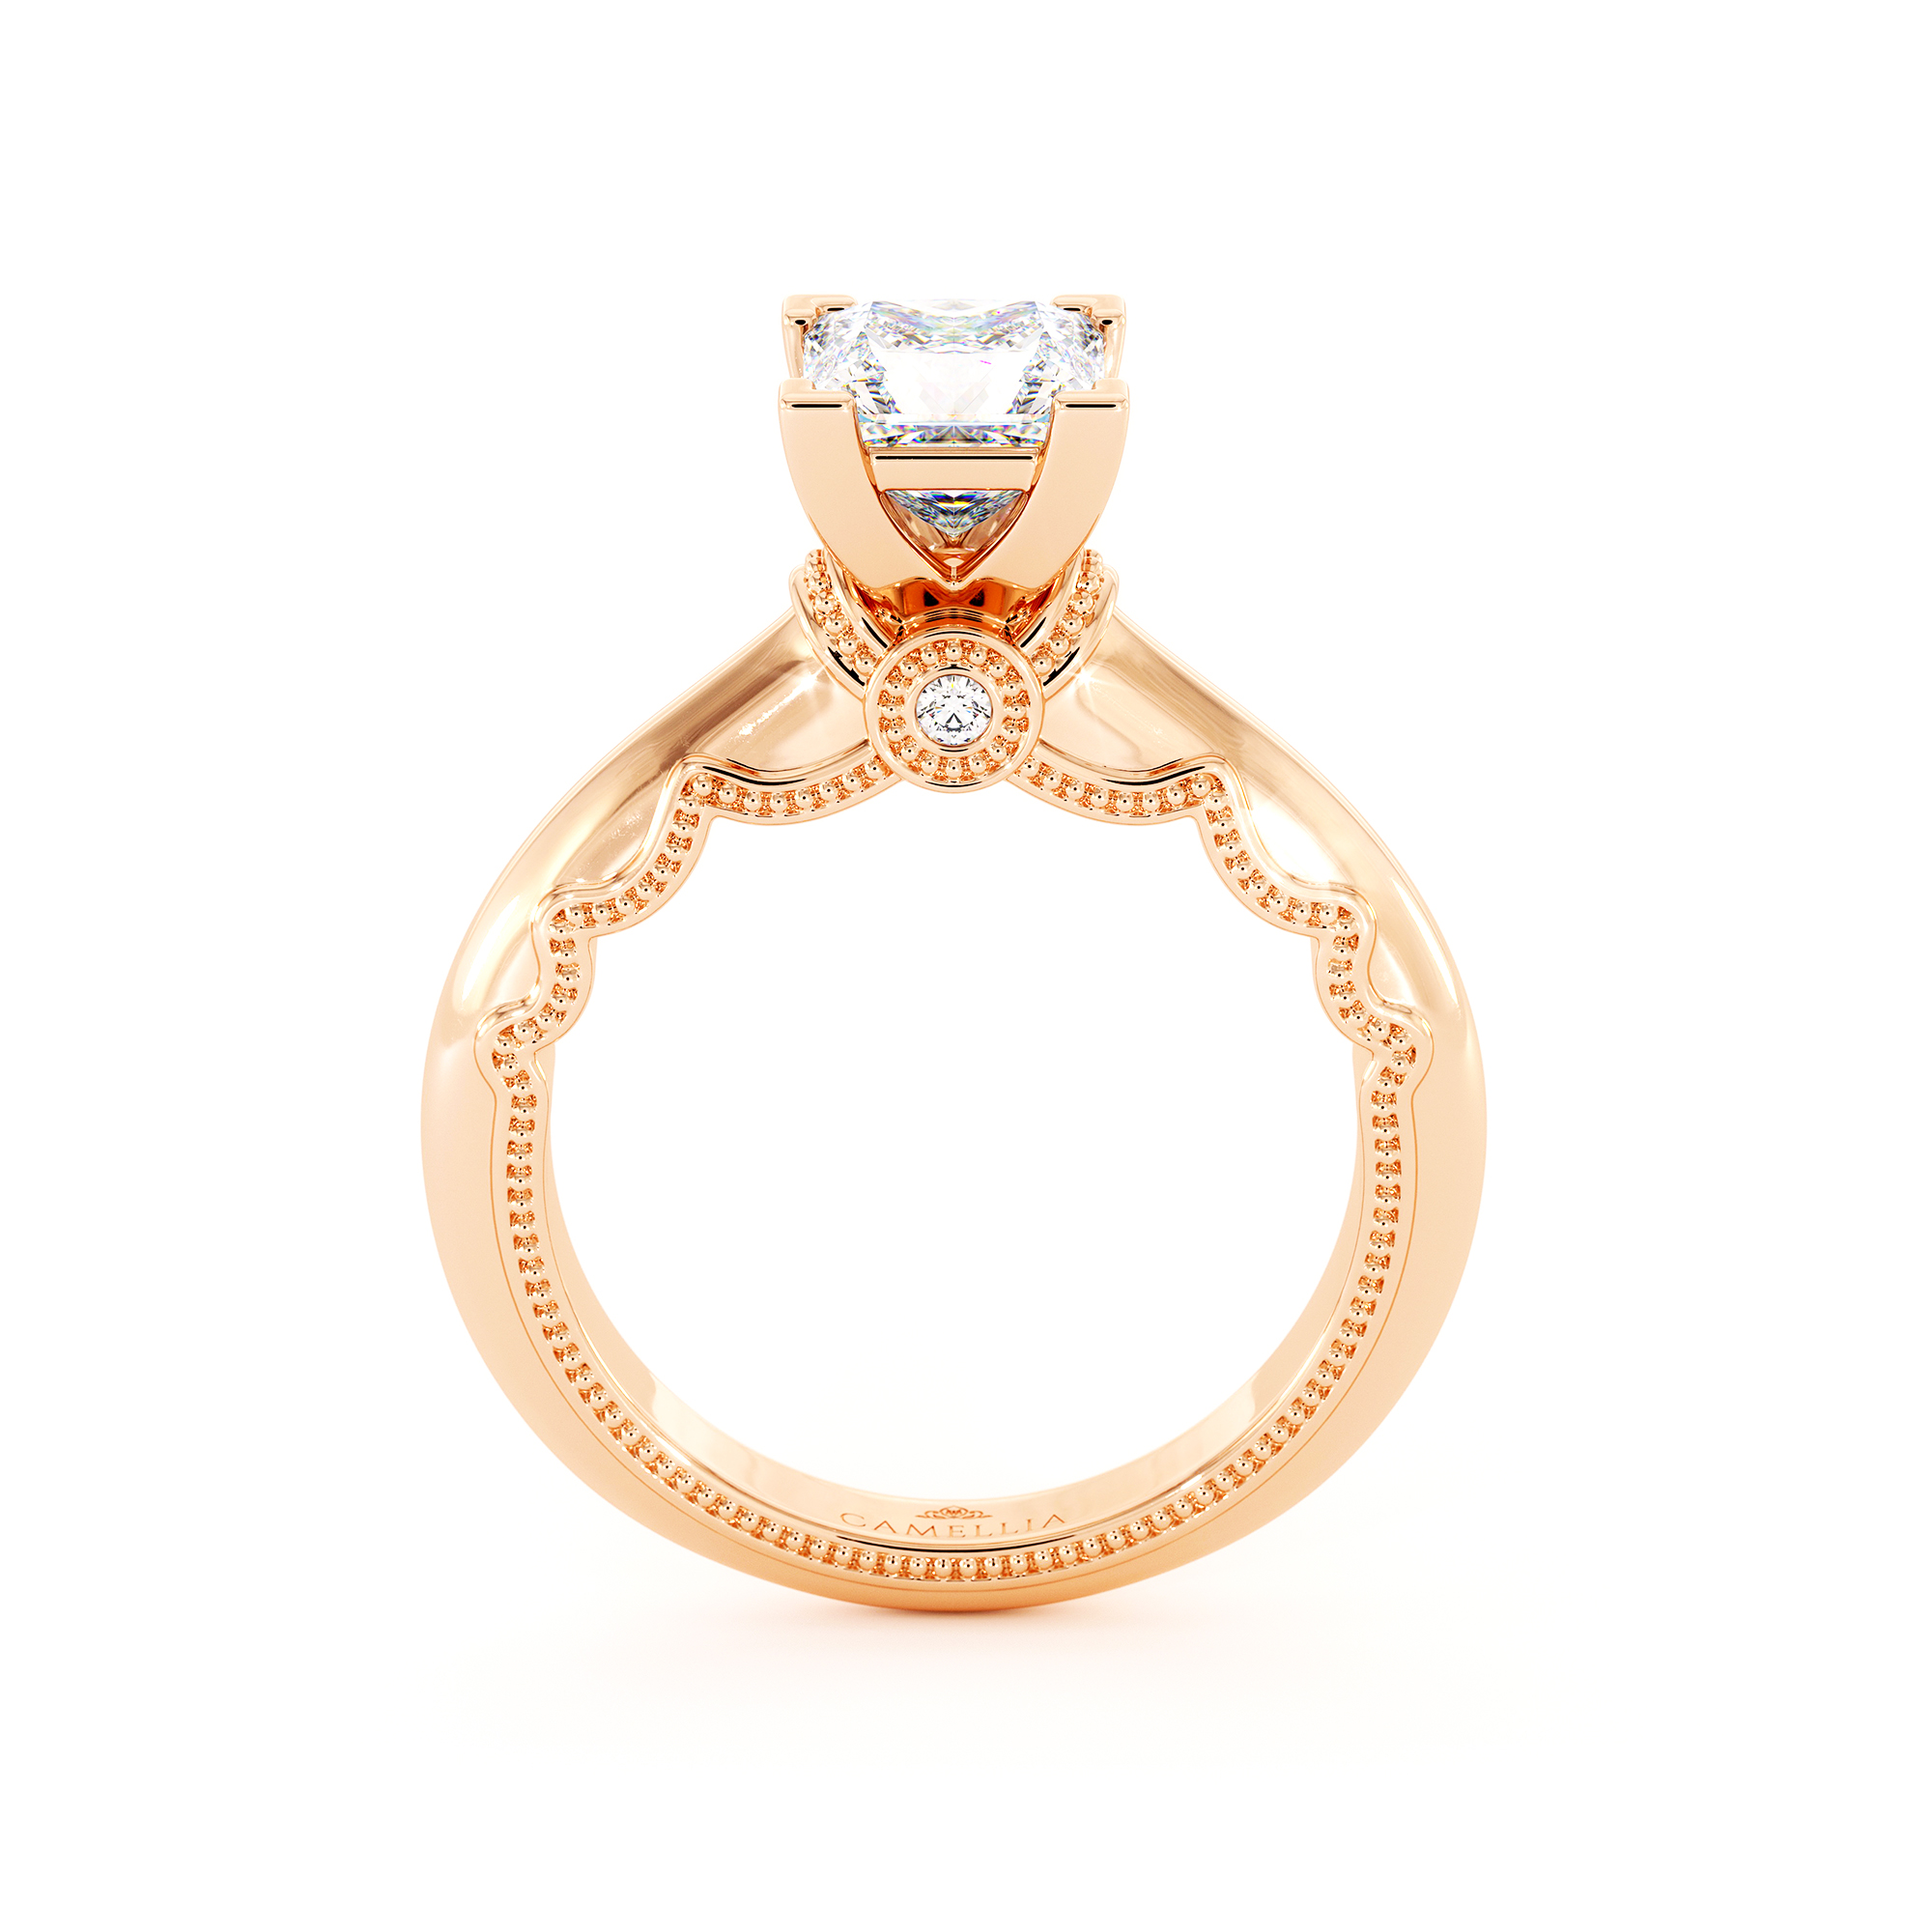 Princess Cut Moissanite Engagement Ring Victorian Rose Gold Ring Unique Square Cut Engagement Ring